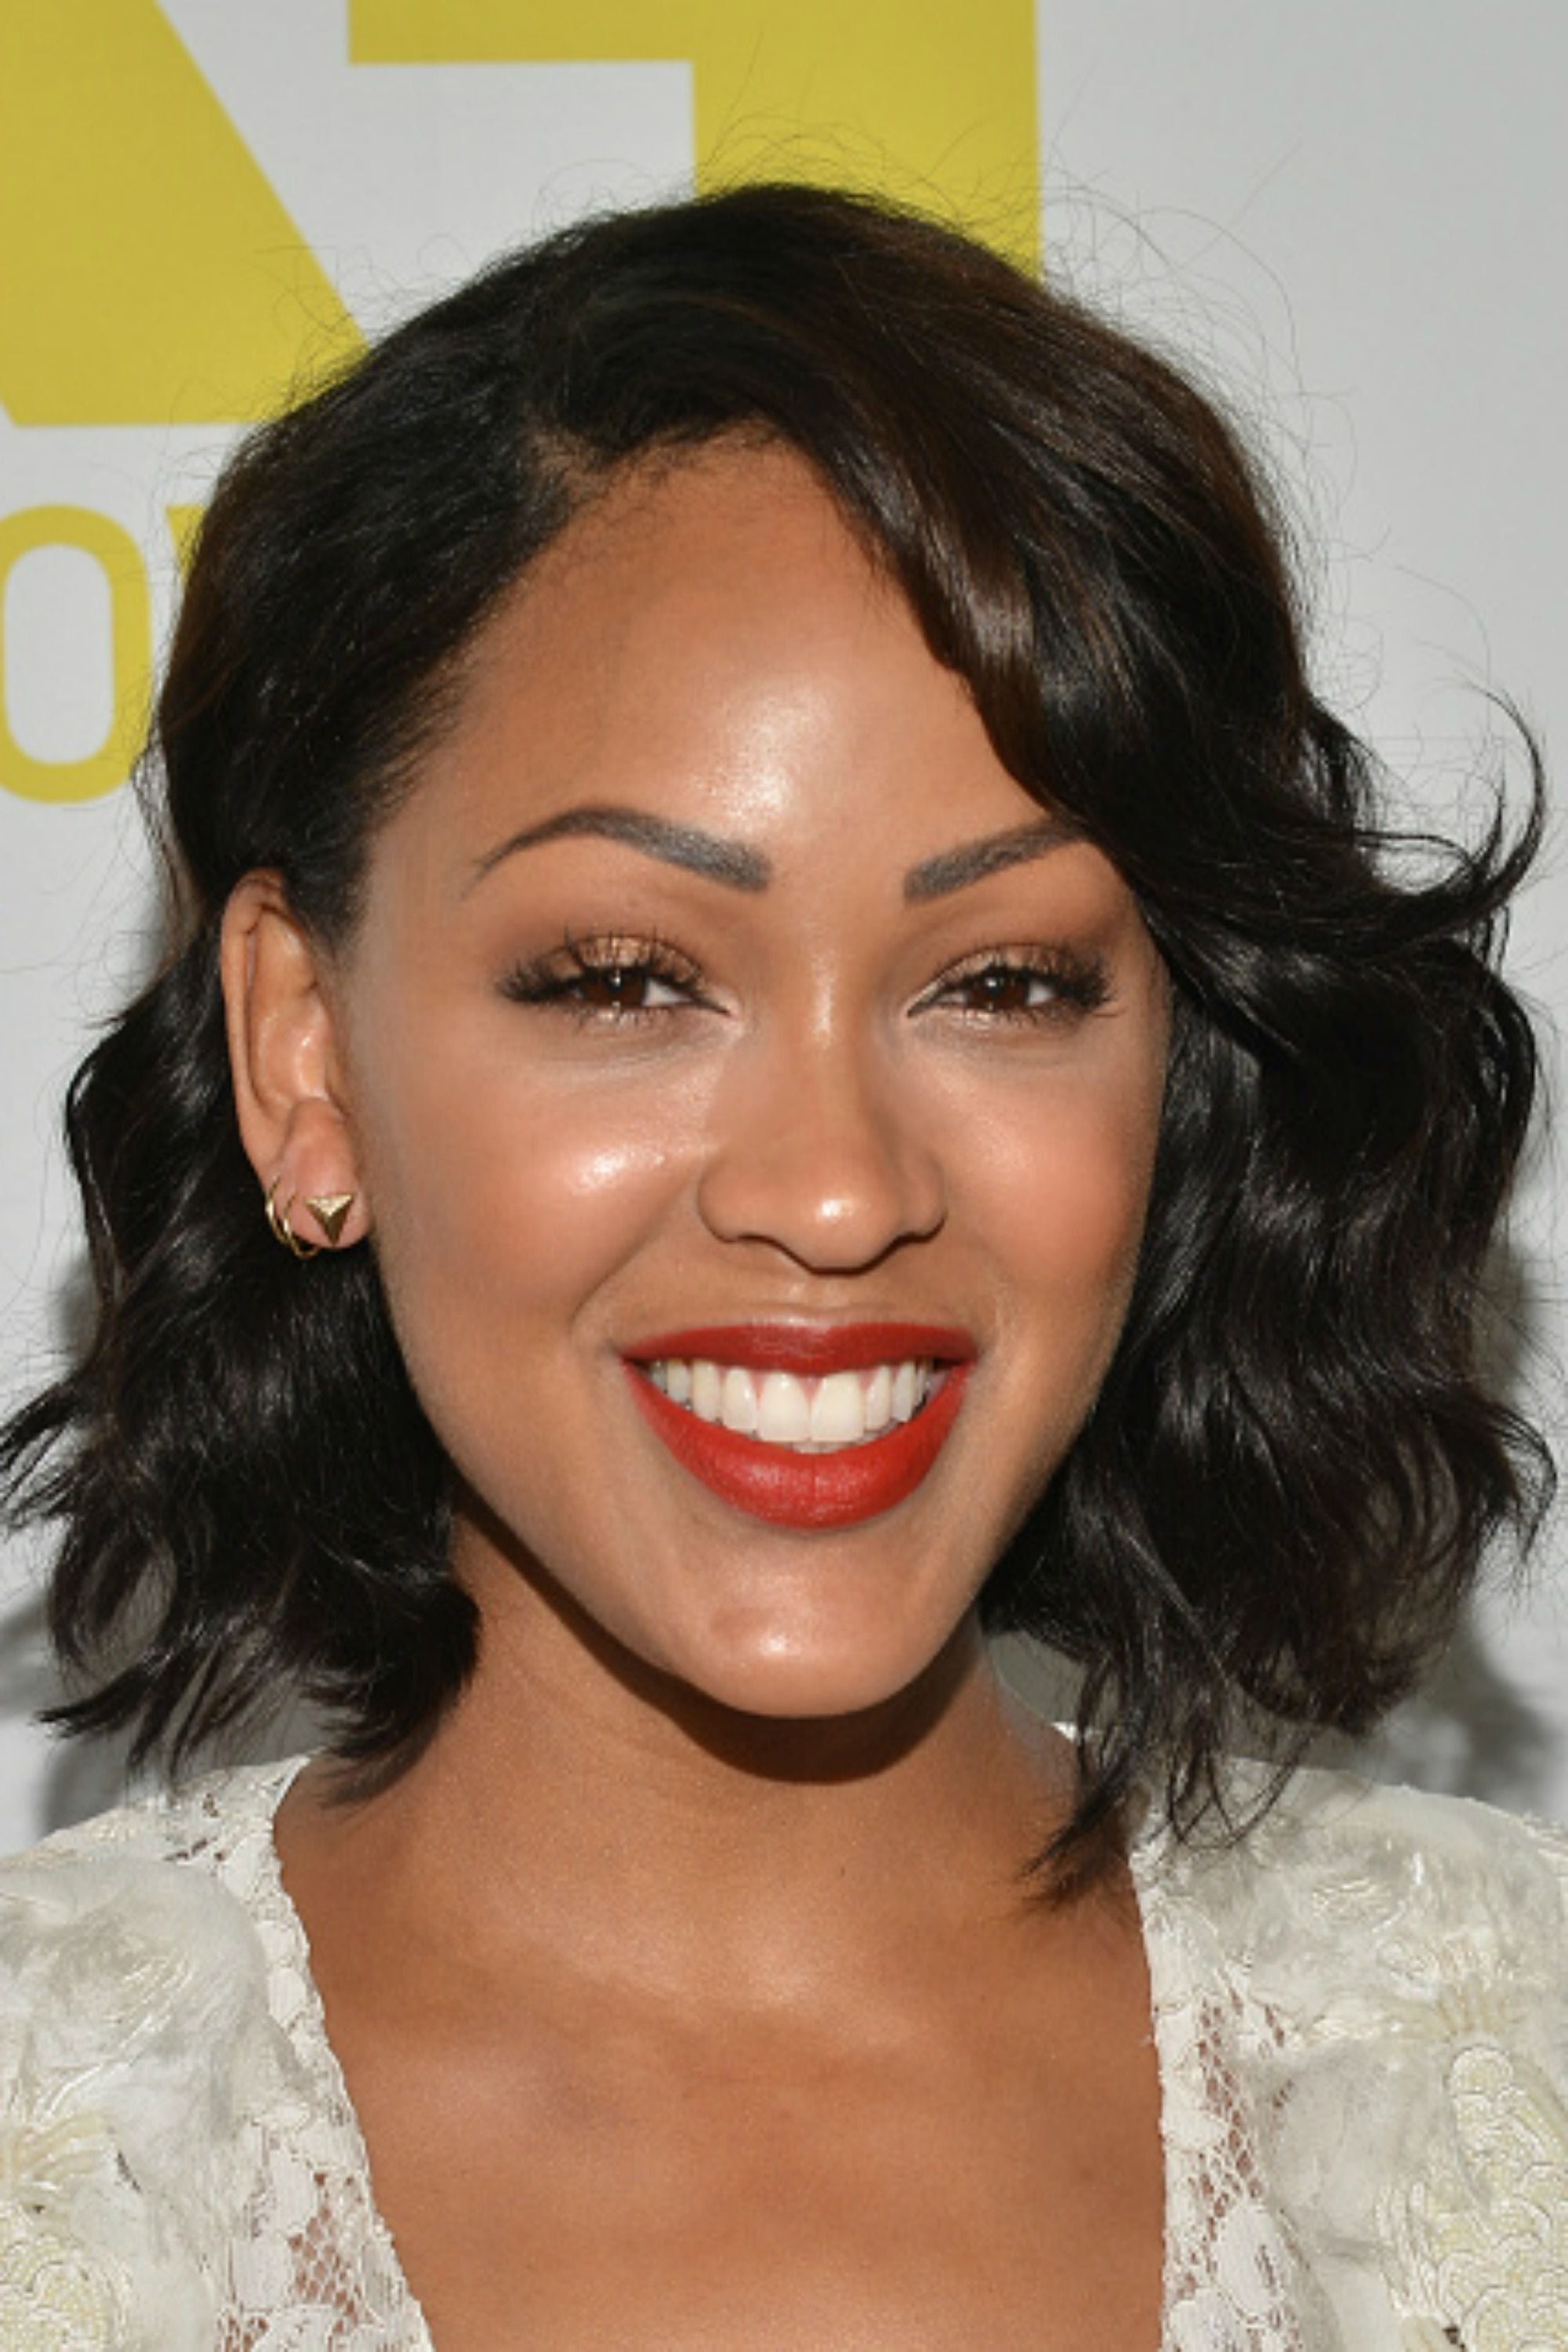 30 Short Hairstyles For Thick Hair 2017 – Women's Haircuts For Short With Regard To Short To Medium Hairstyles For Thick Hair (View 24 of 25)